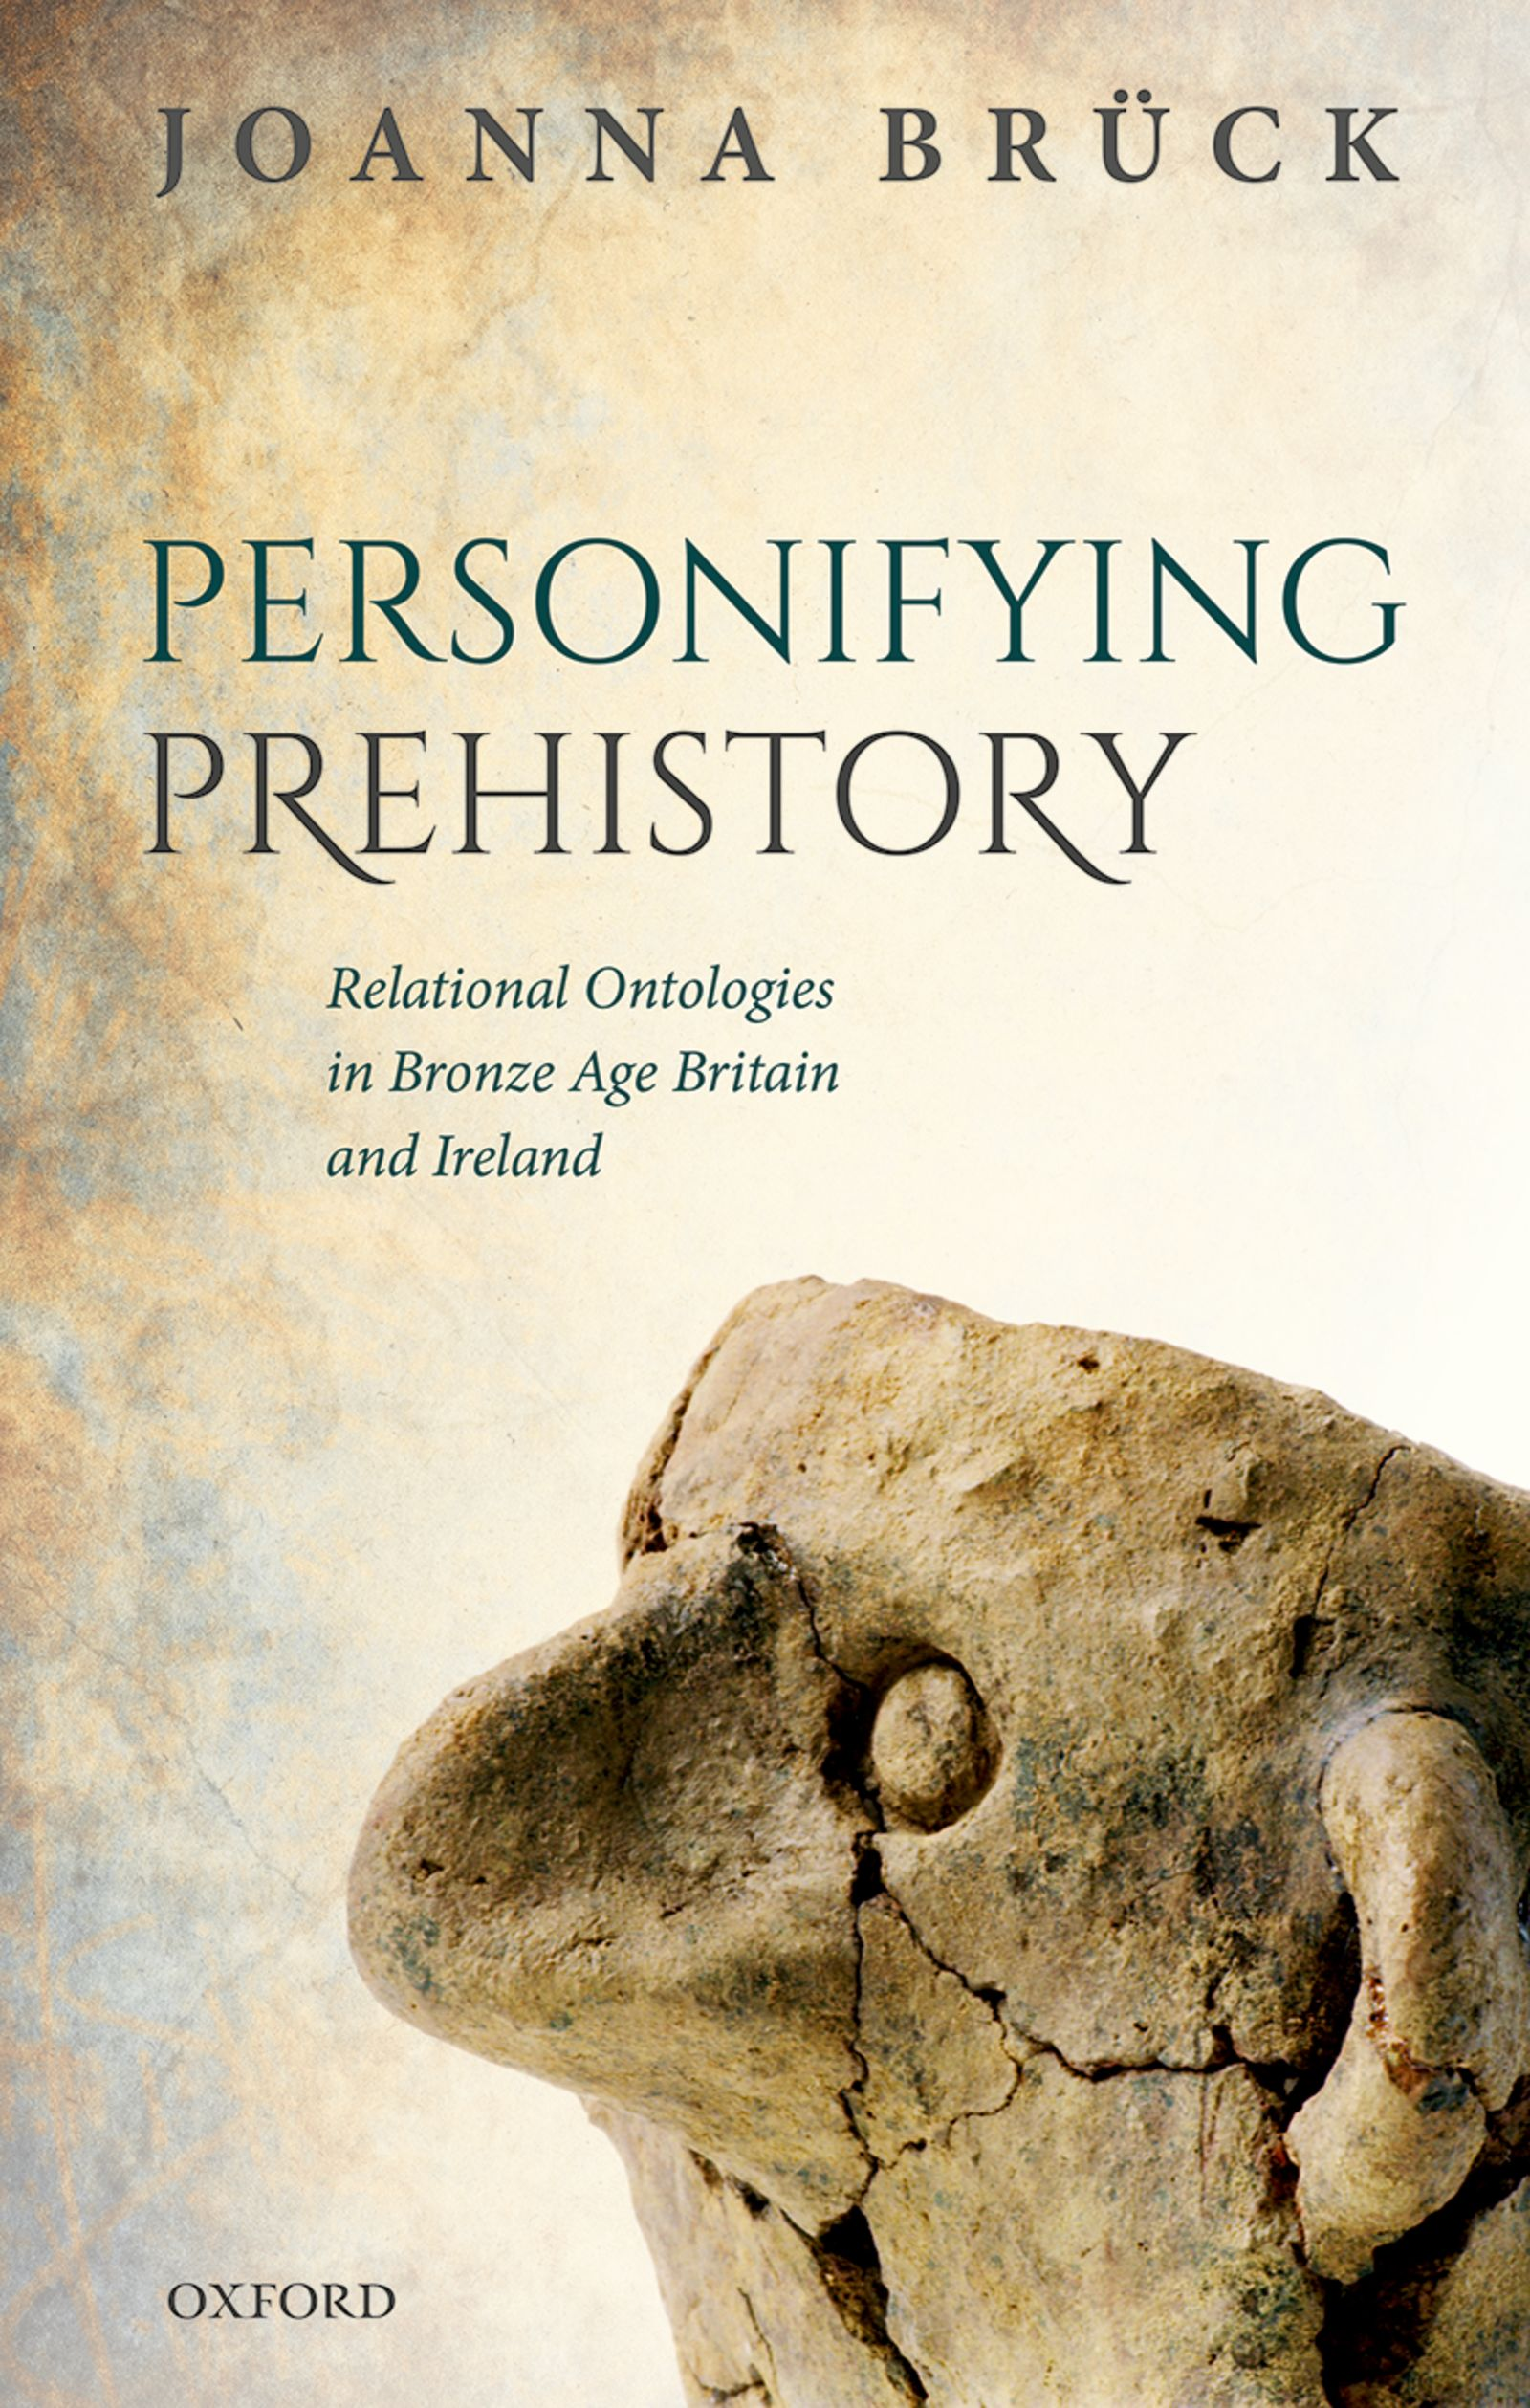 Personifying Prehistory: Relational Ontologies in Bronze Age Britain and Ireland